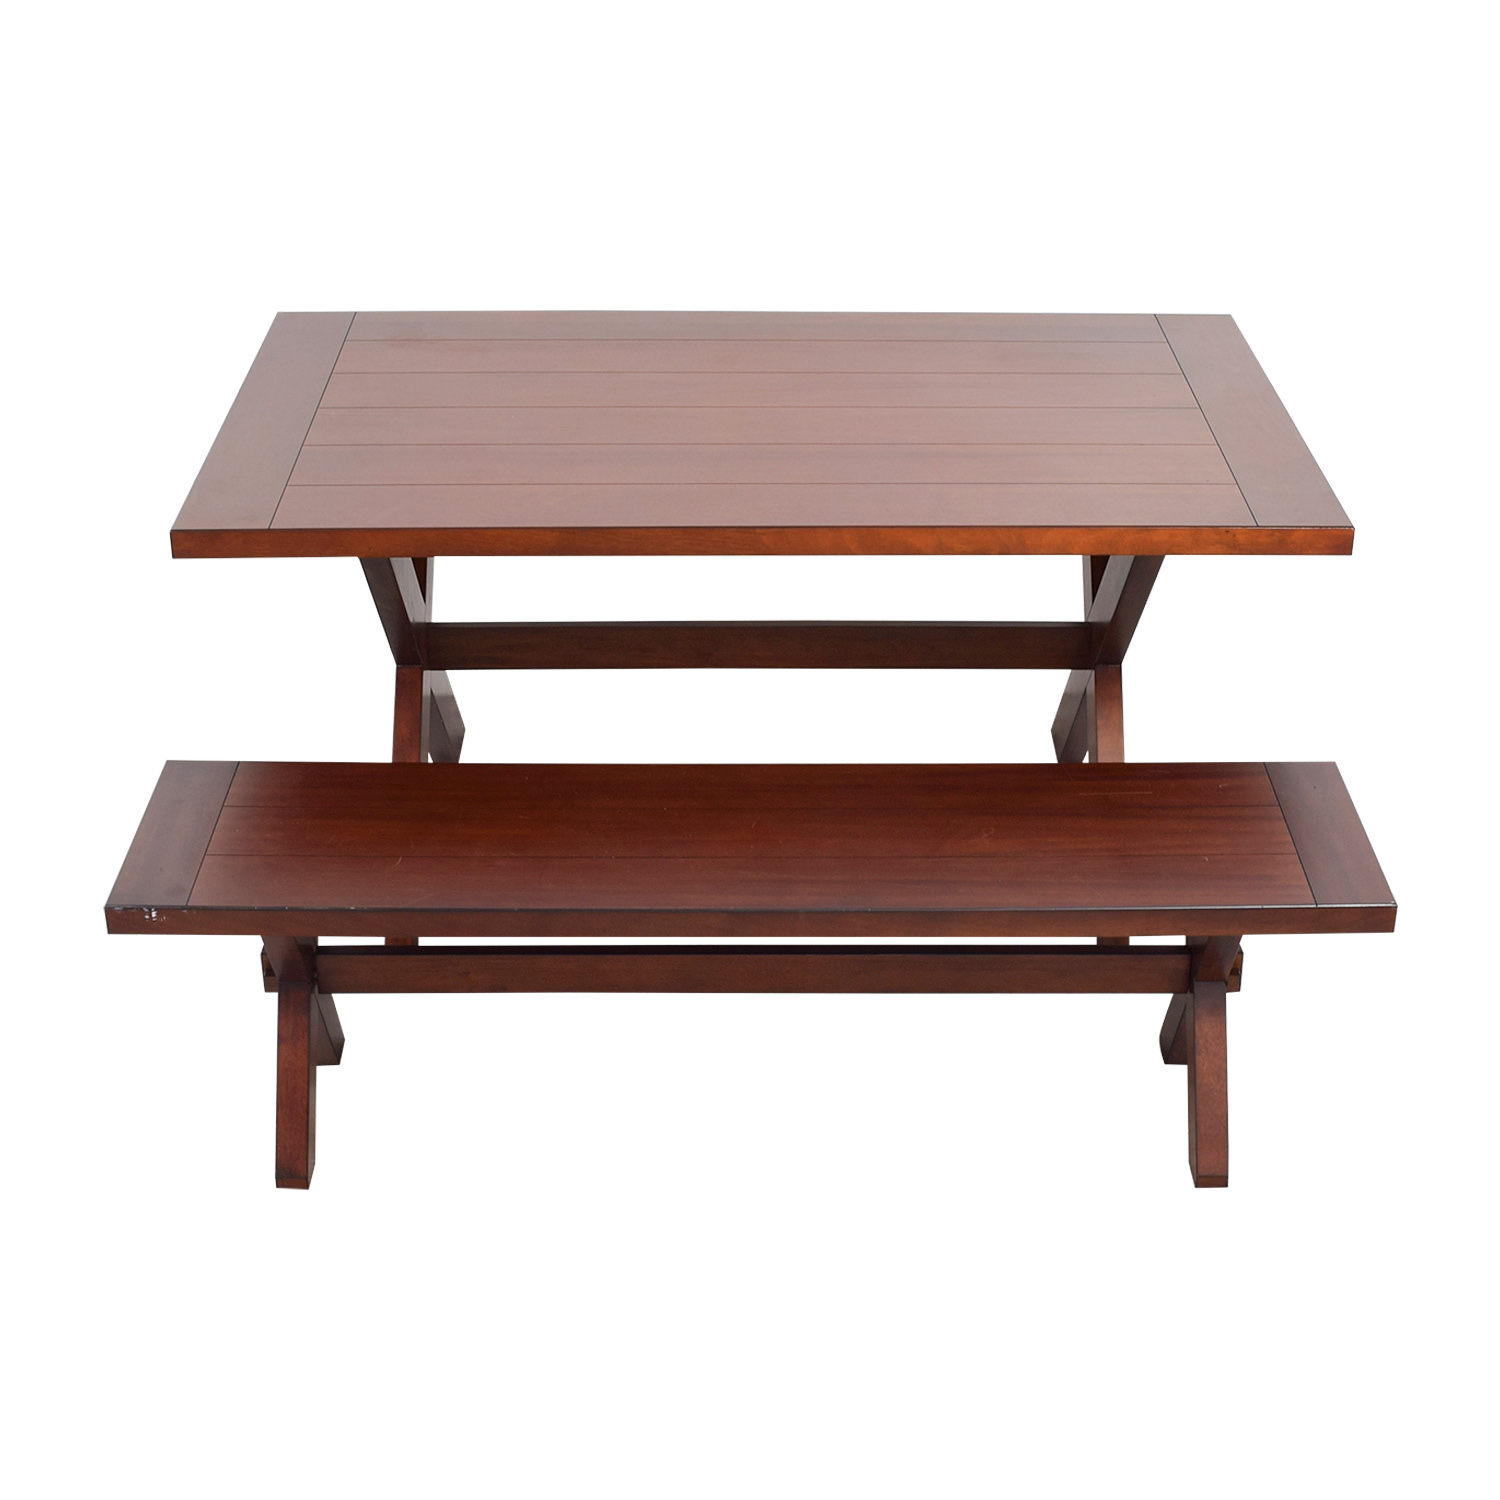 Pier 1 Imports Pier 1 Imports Nolan Wood Dining Table with Bench coupon